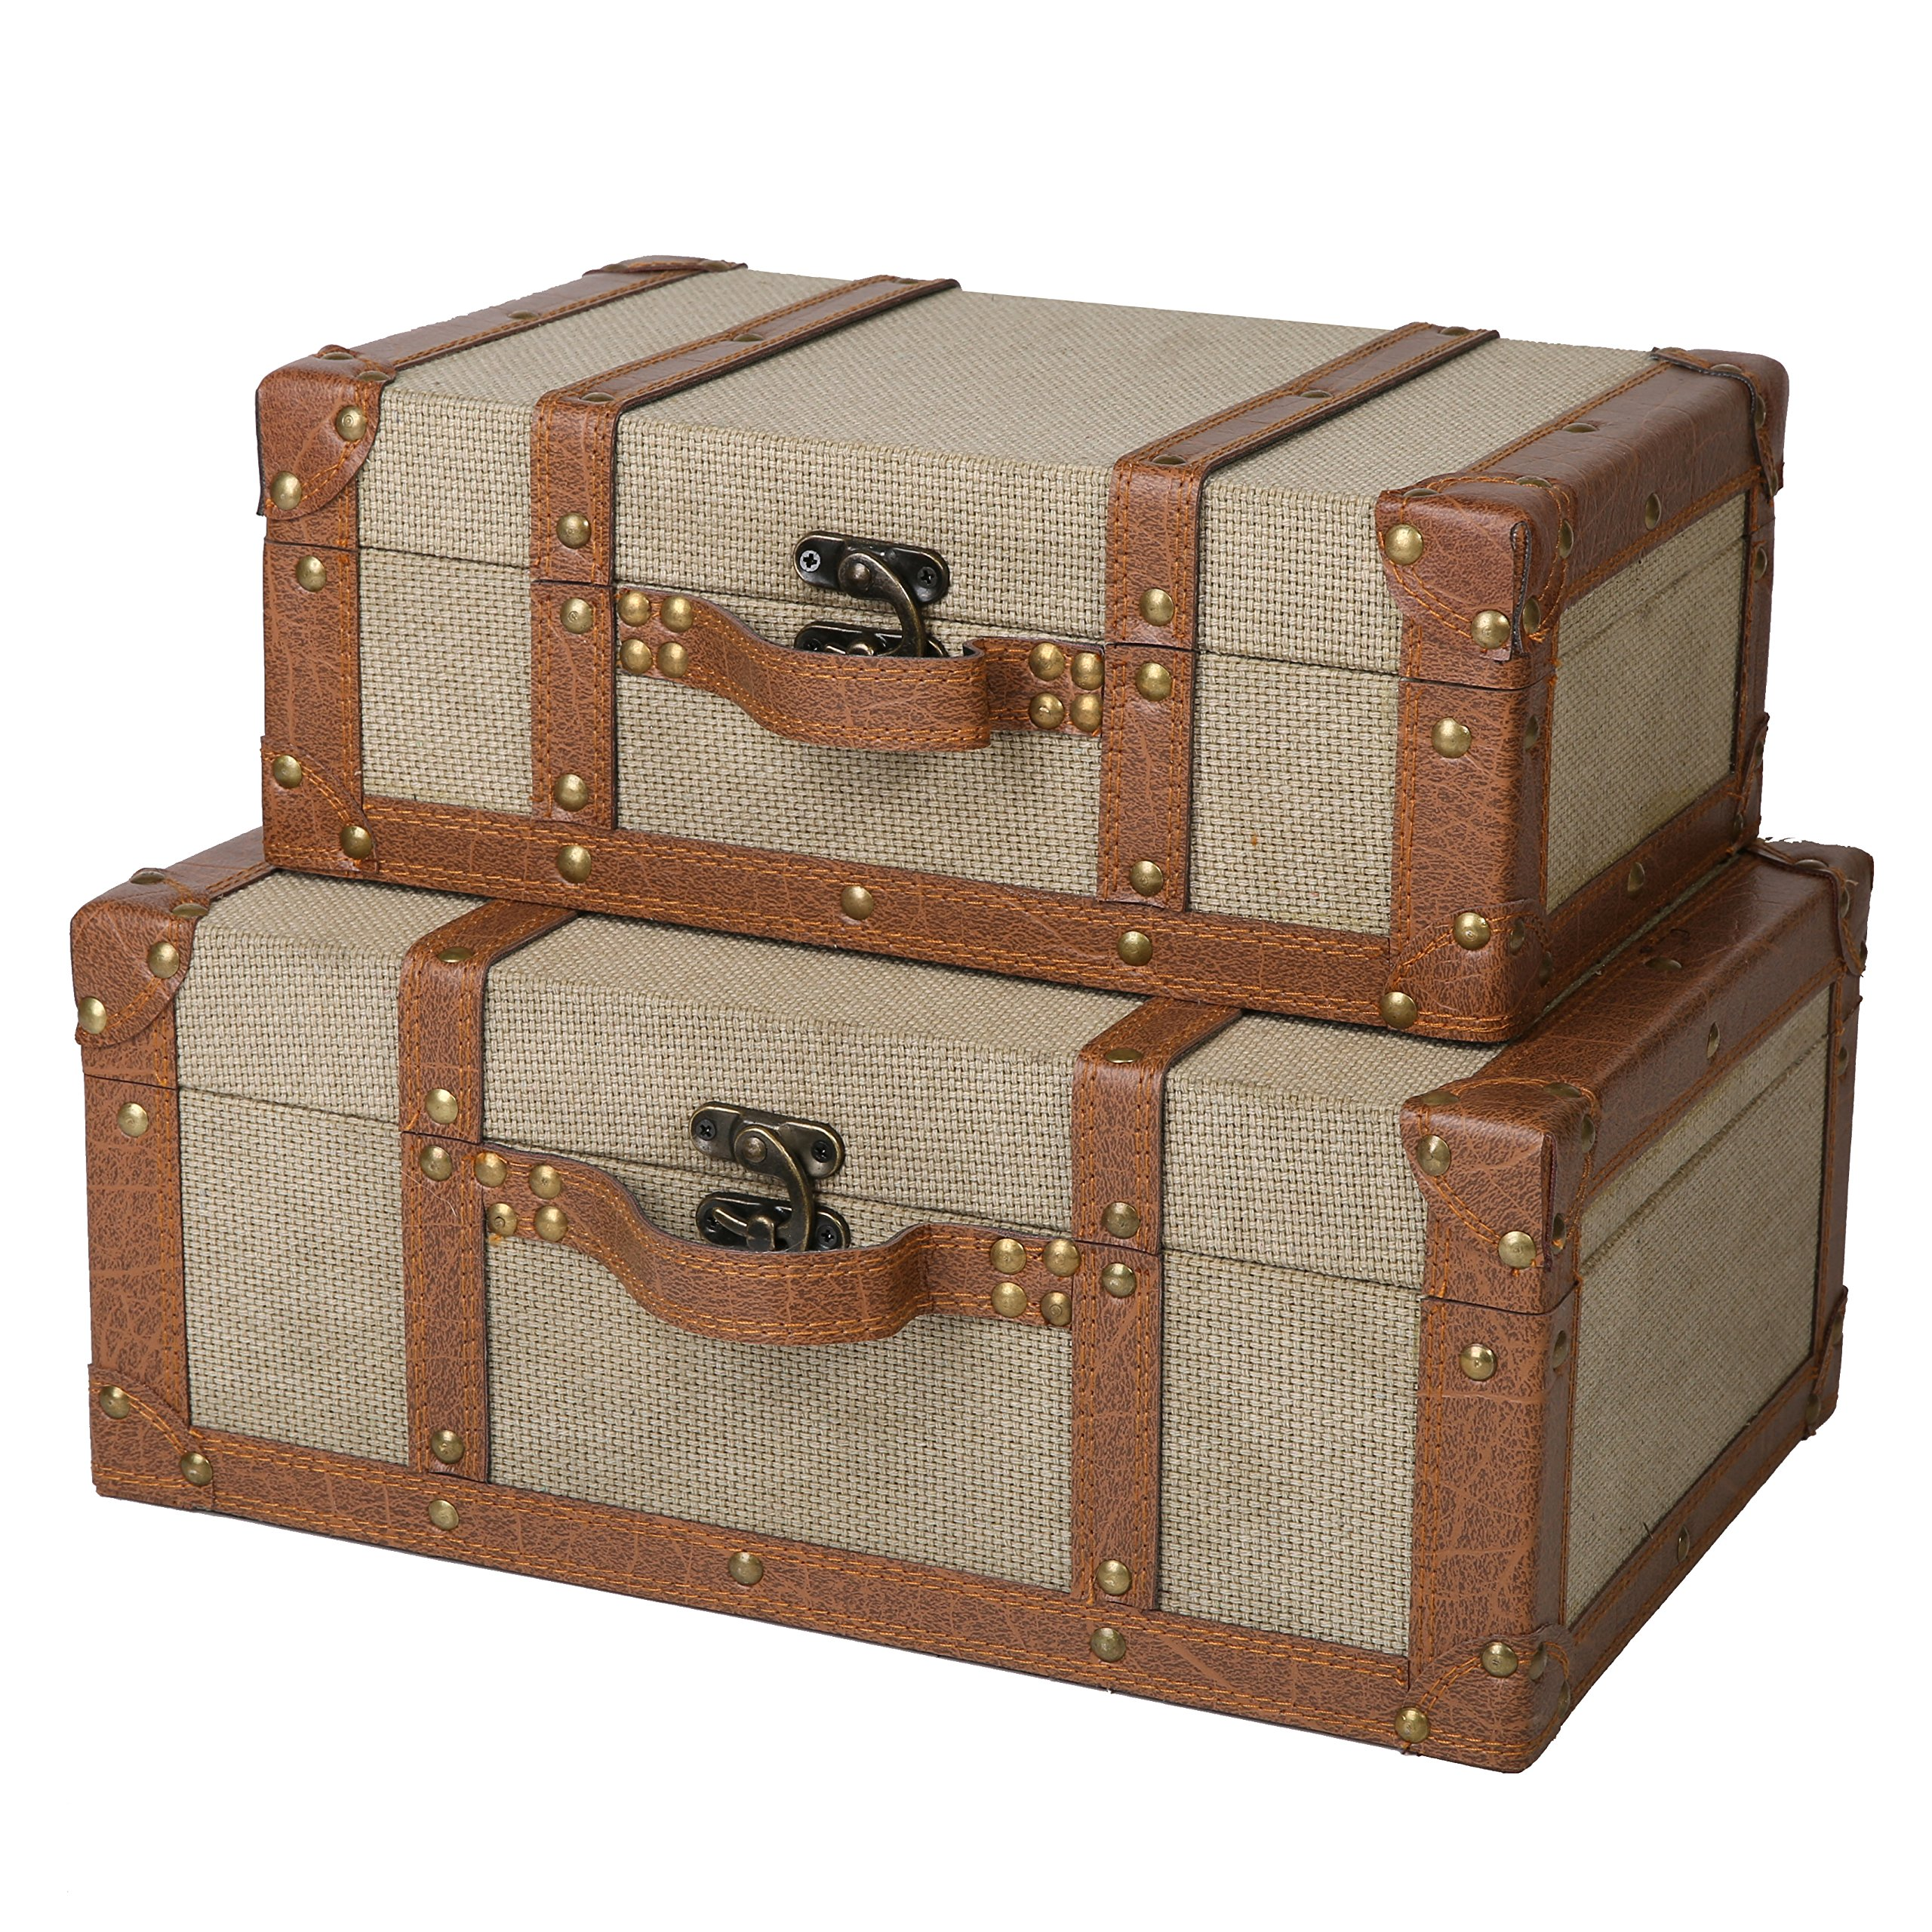 SLPR Carson Wooden Fabric-Covered Suitcase Boxes (Set of 2, Beige) | Old-Fashioned Antique Vintage Style Nesting Trunks for Shelf Home Decor Birthday Parties Wedding Decoration Displays Crafts by SLPR